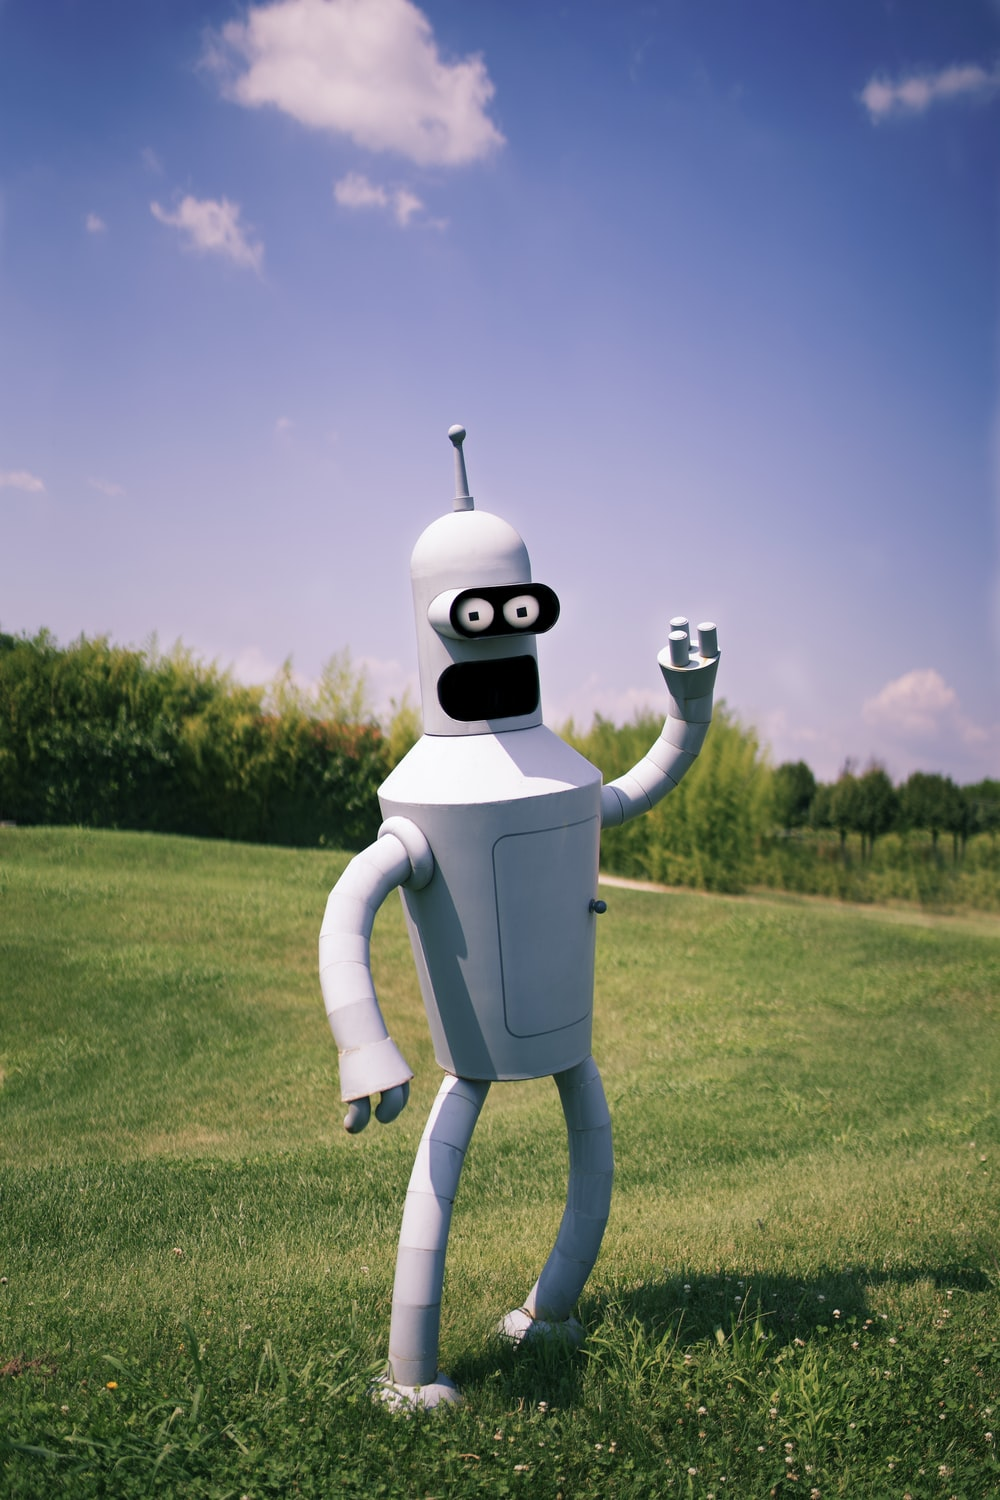 white robot on green grass field during daytime